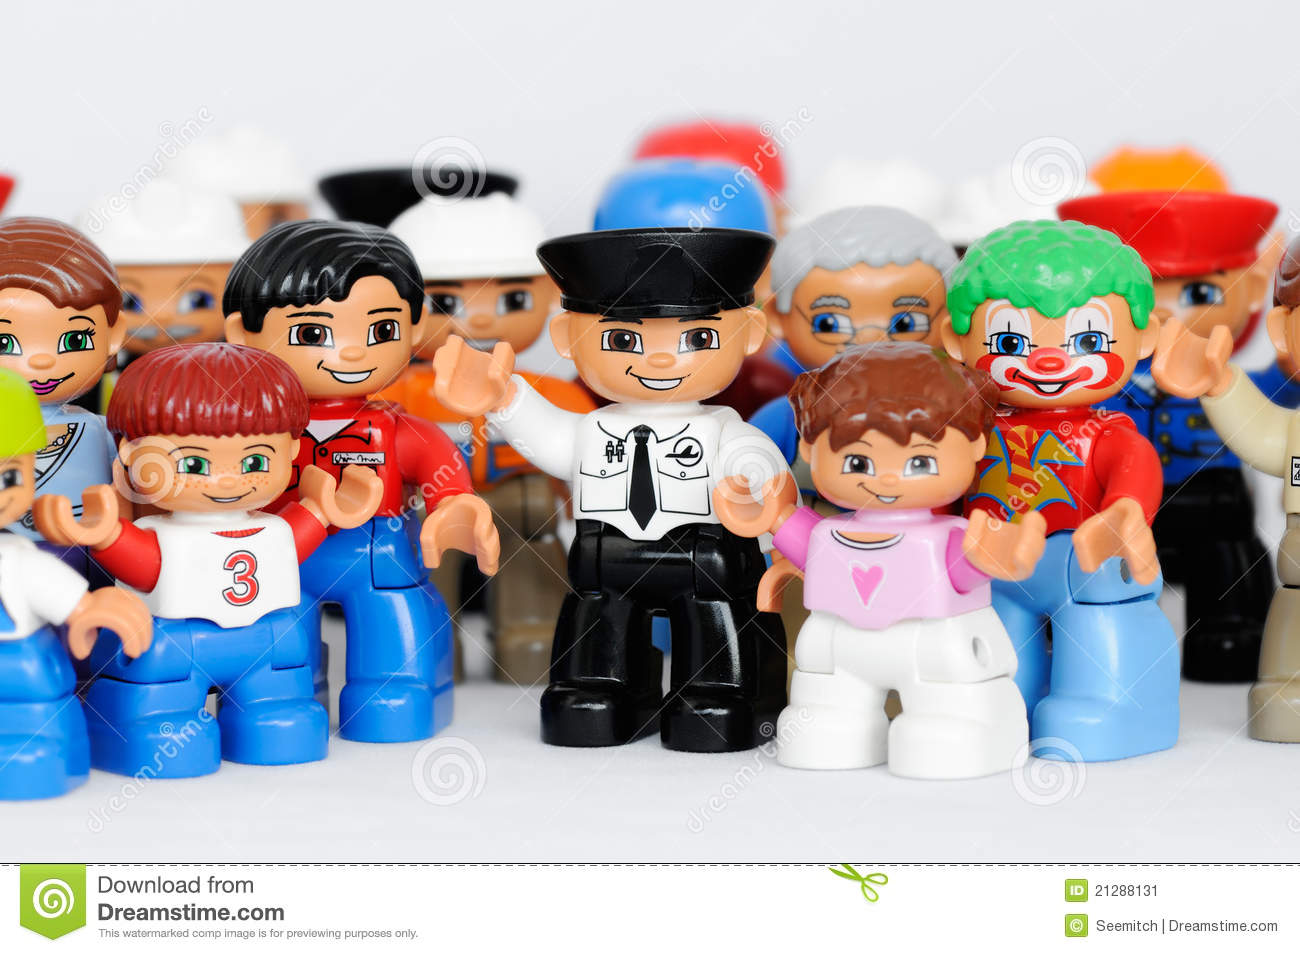 Toys For Groups : A group of lego figures editorial photo image